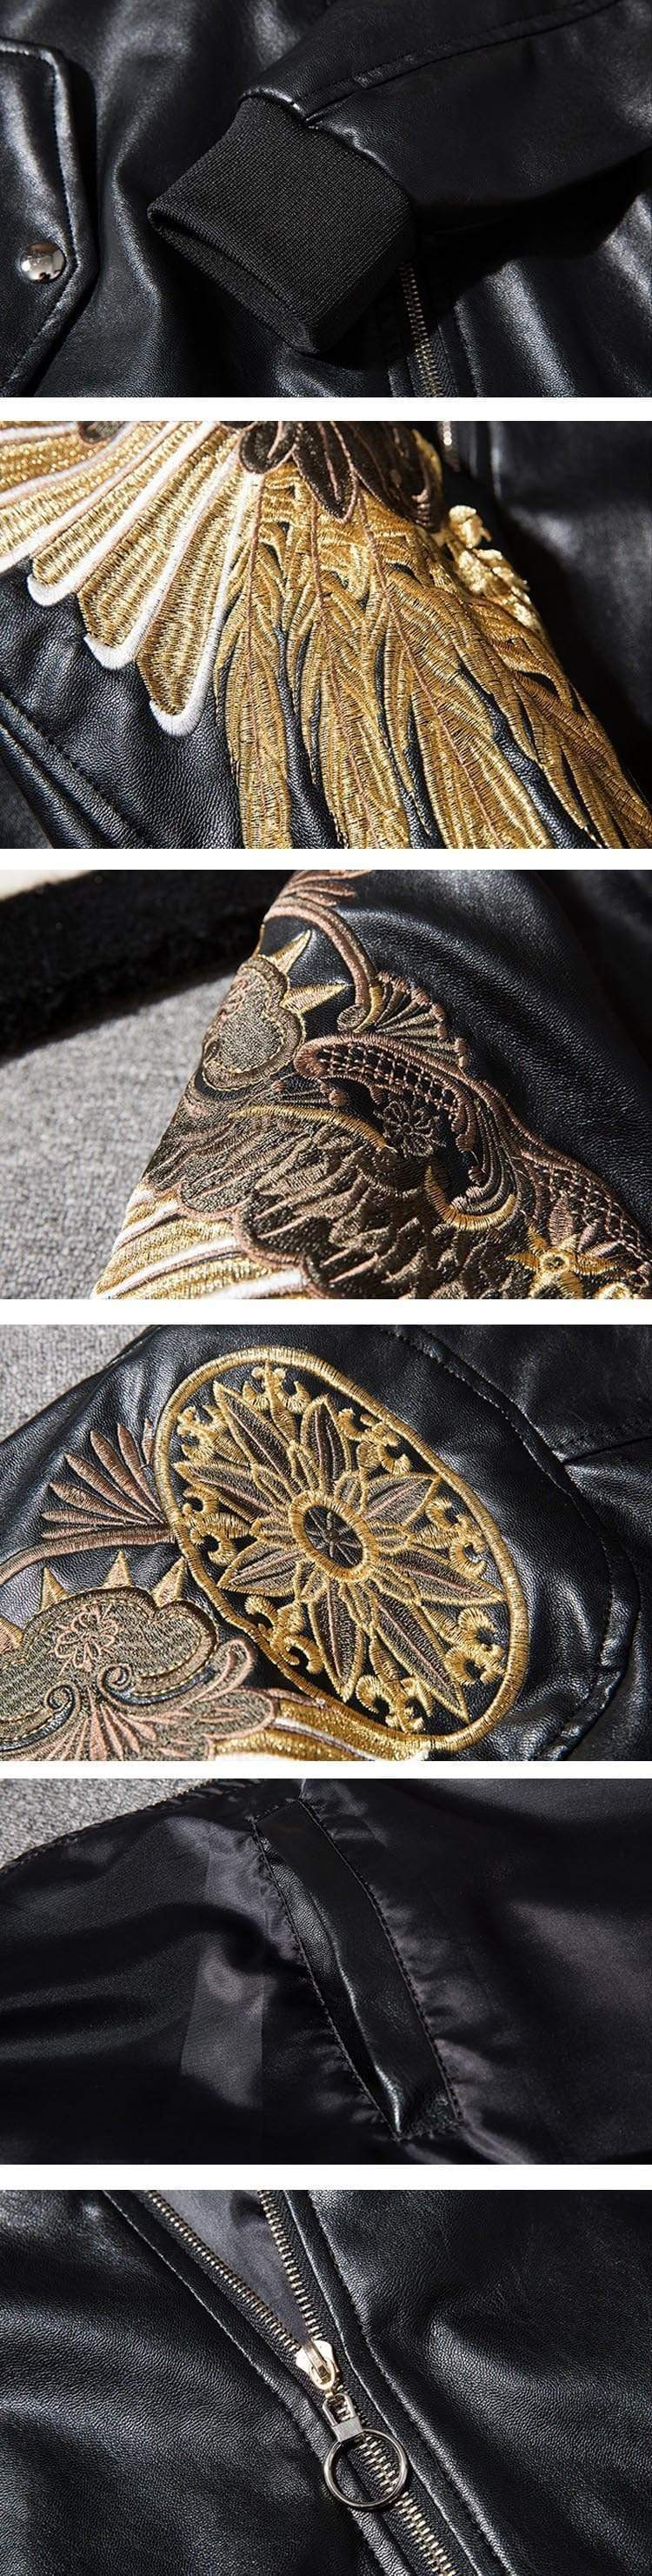 Gold Wings Embroidery Motorcycle Jacket